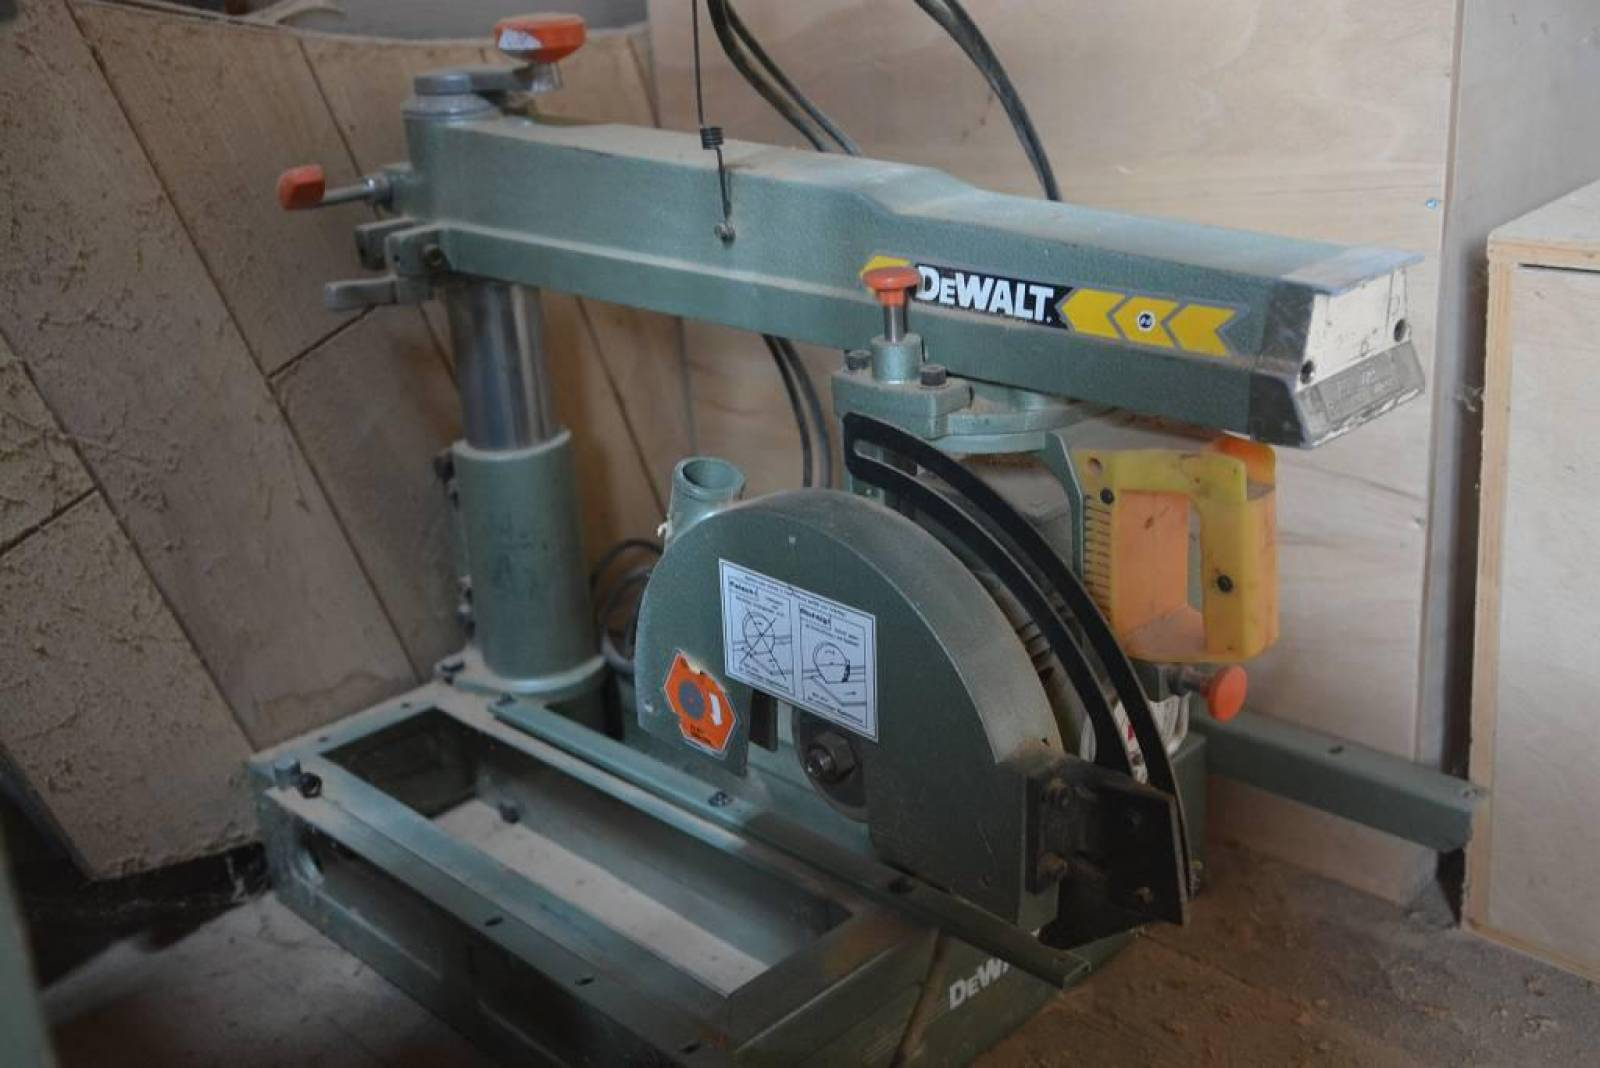 Dw Shop Radial Arm Saw Dewalt Dw 110 Power Shop Buy Second Hand